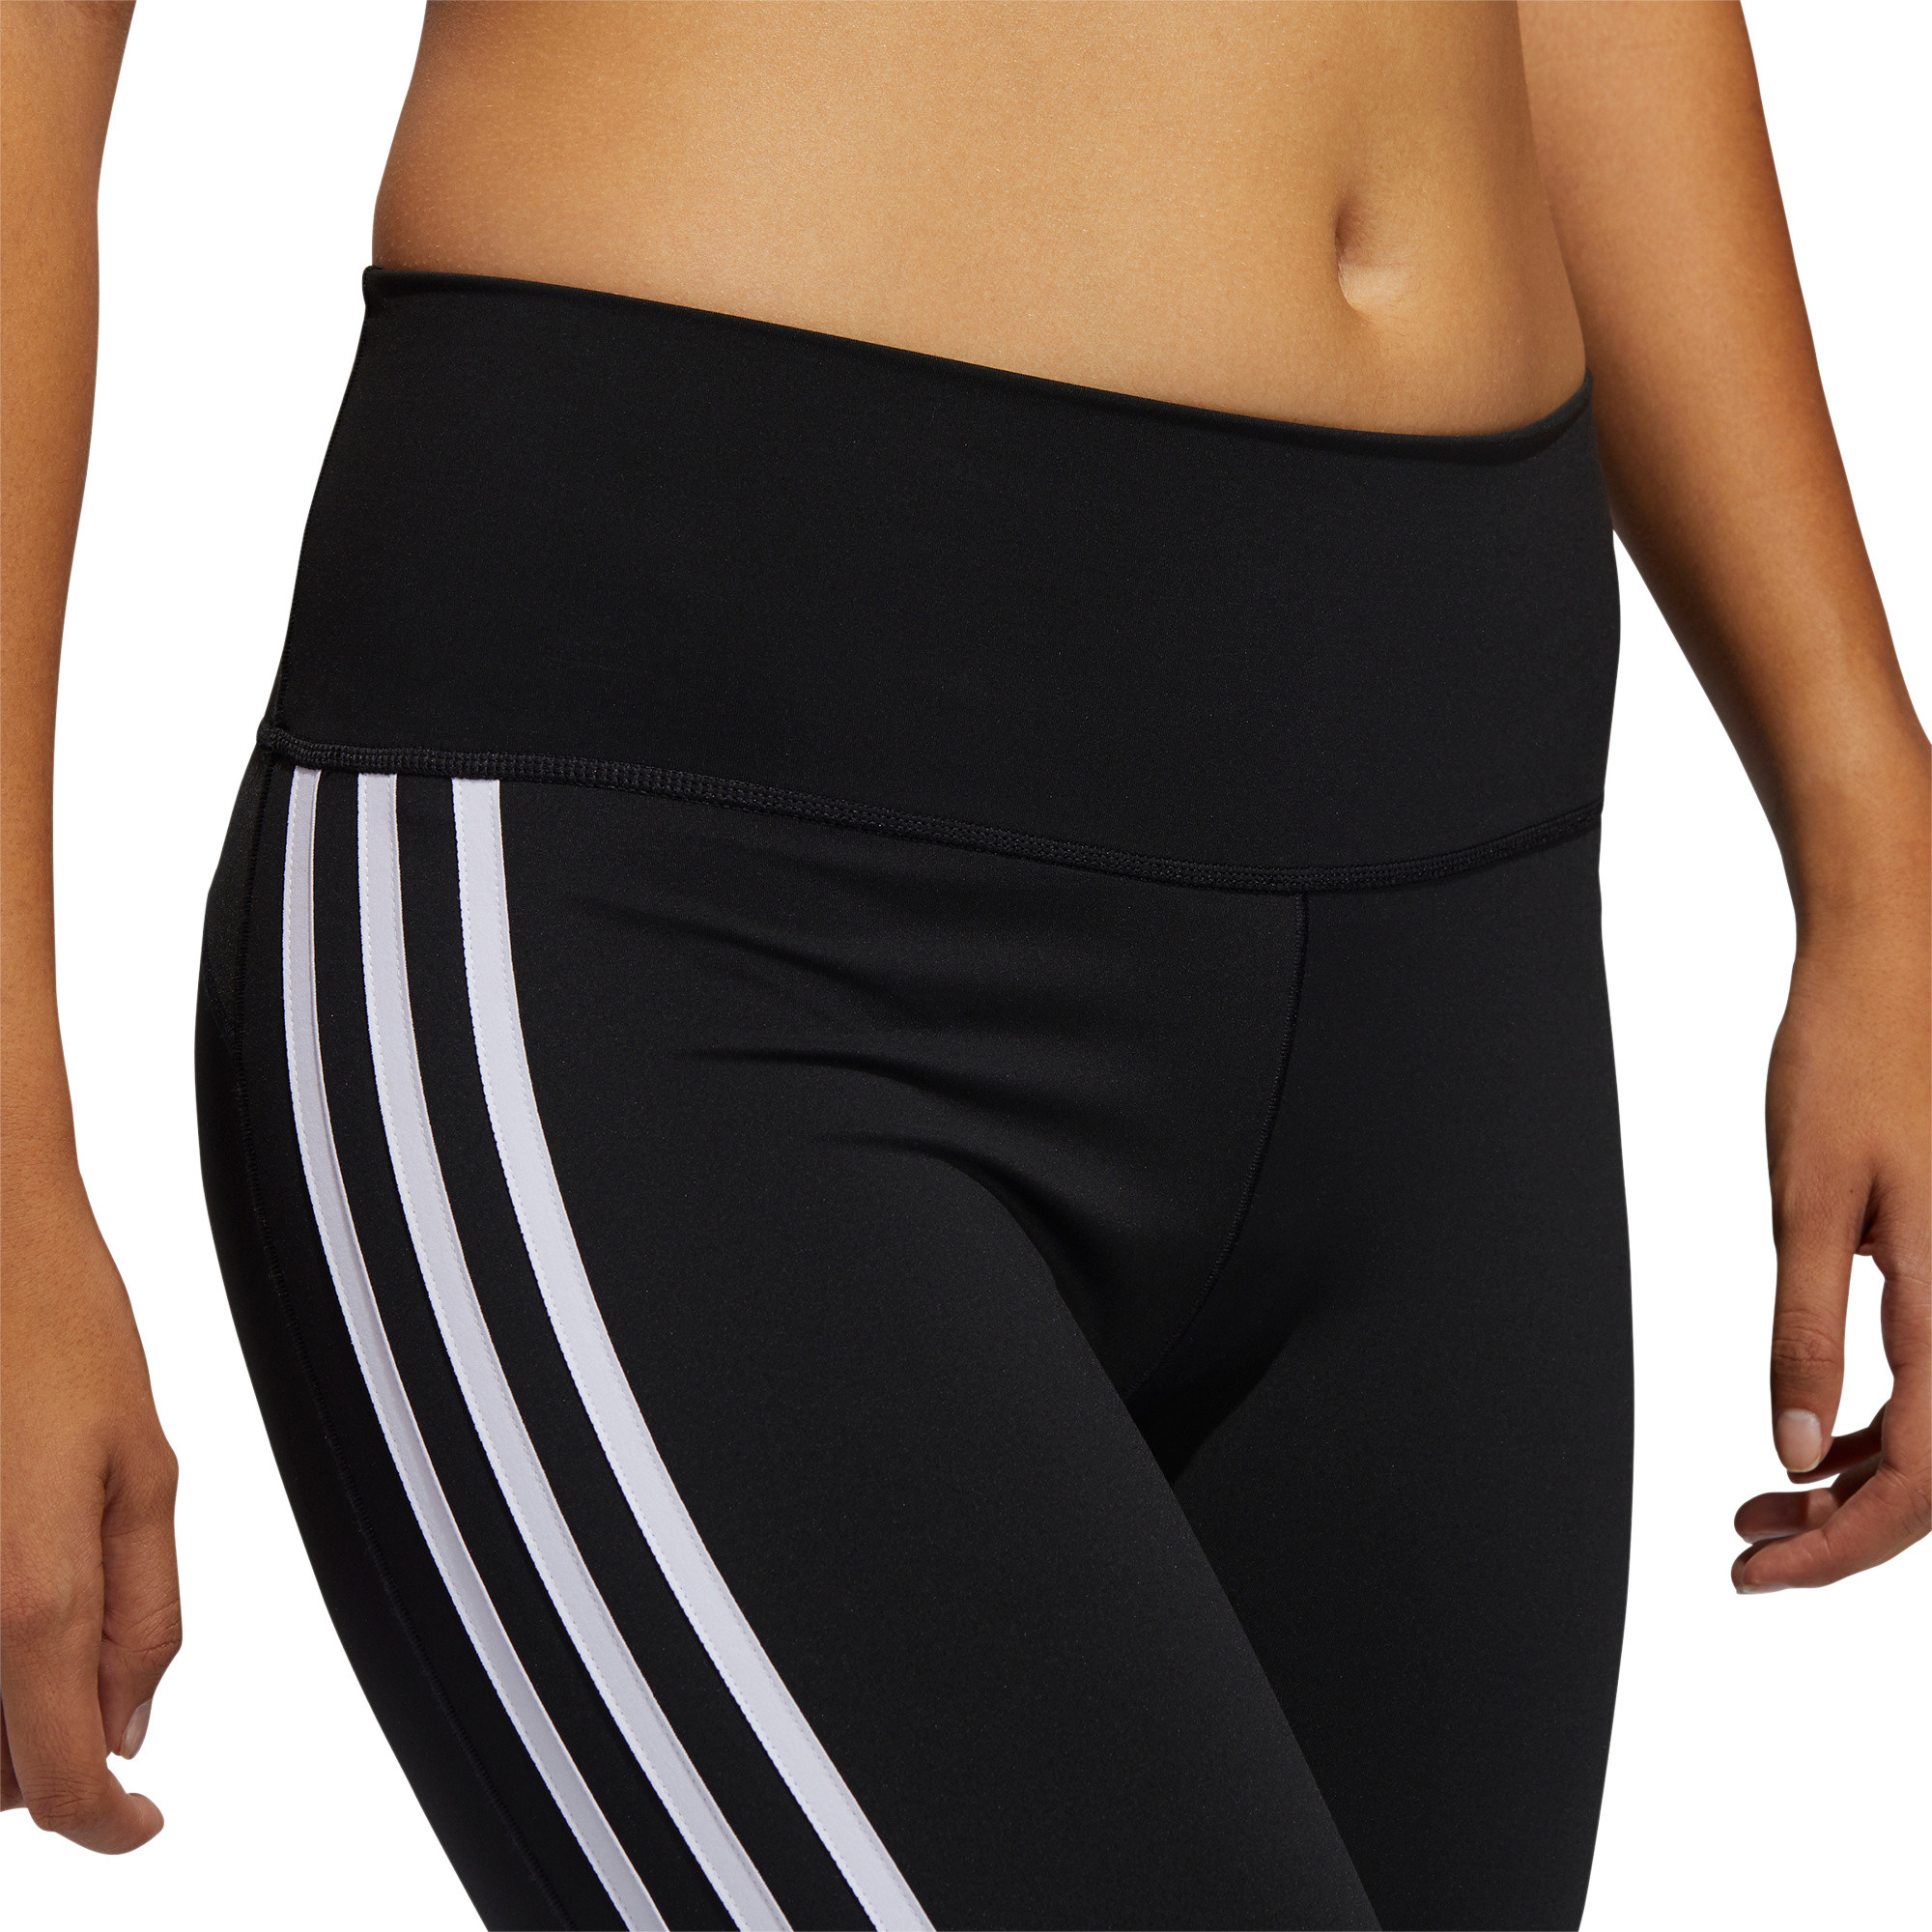 Tight 7/8 Believe This 2.0 3-Stripes, Nero, large image number 6